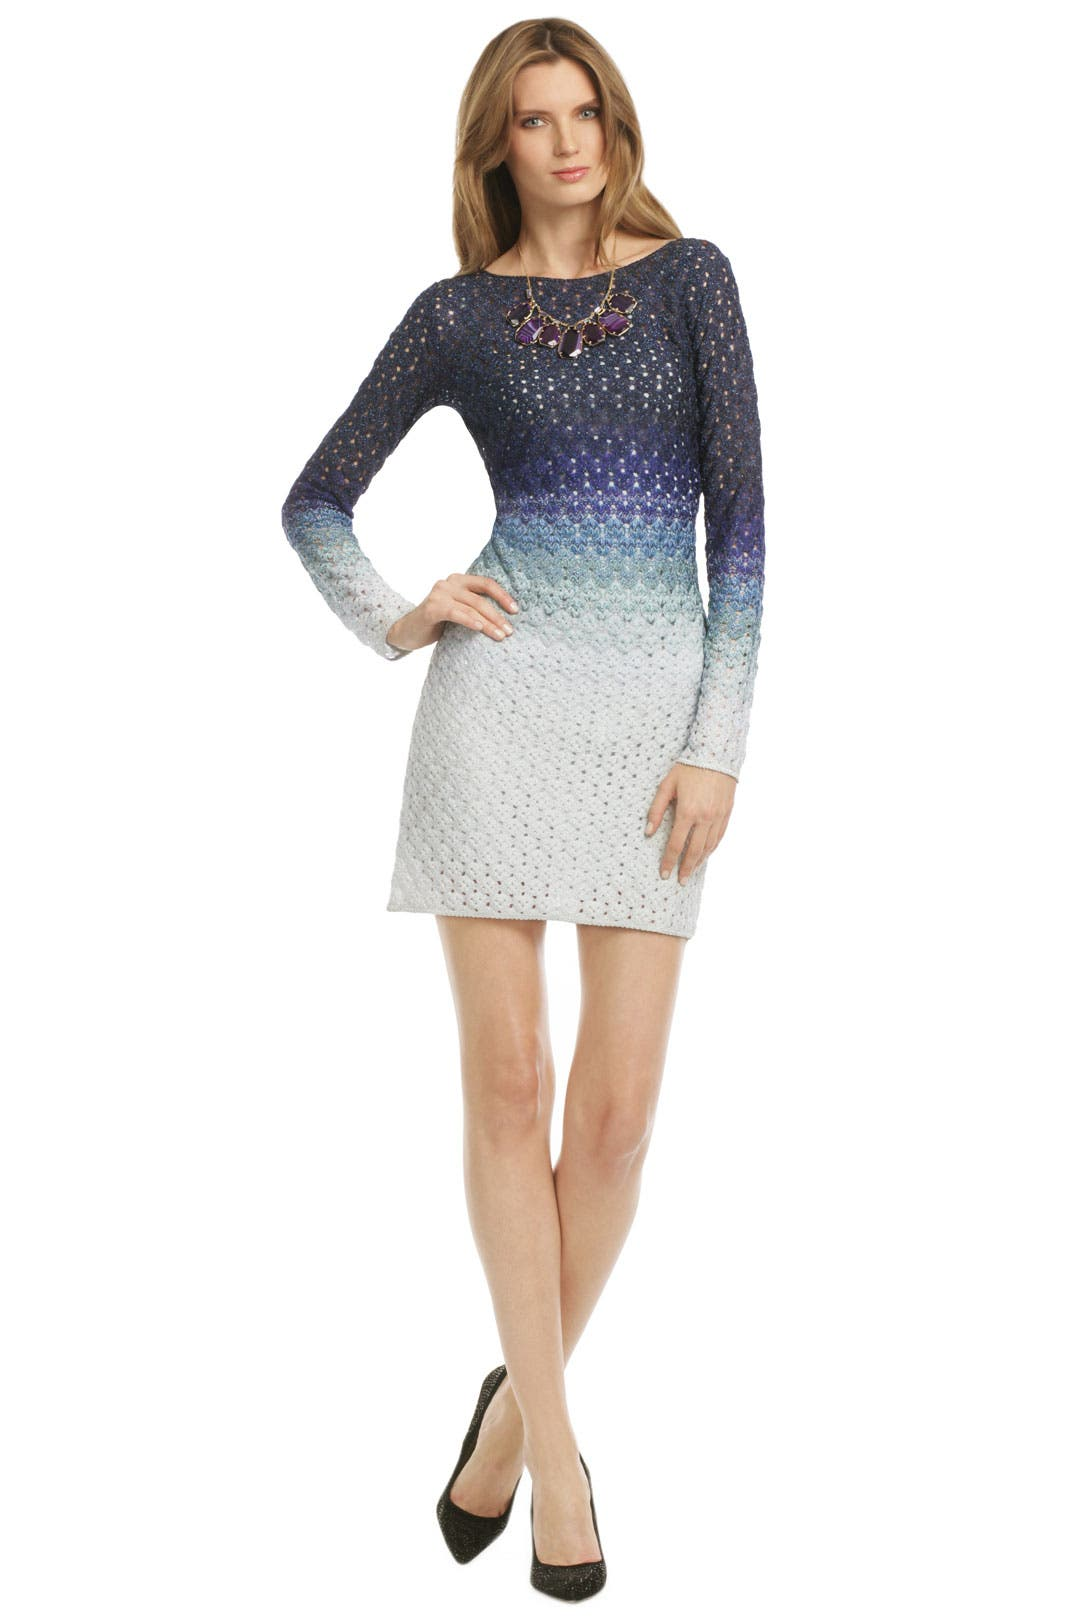 Once In A Blue Moon Dress by Missoni